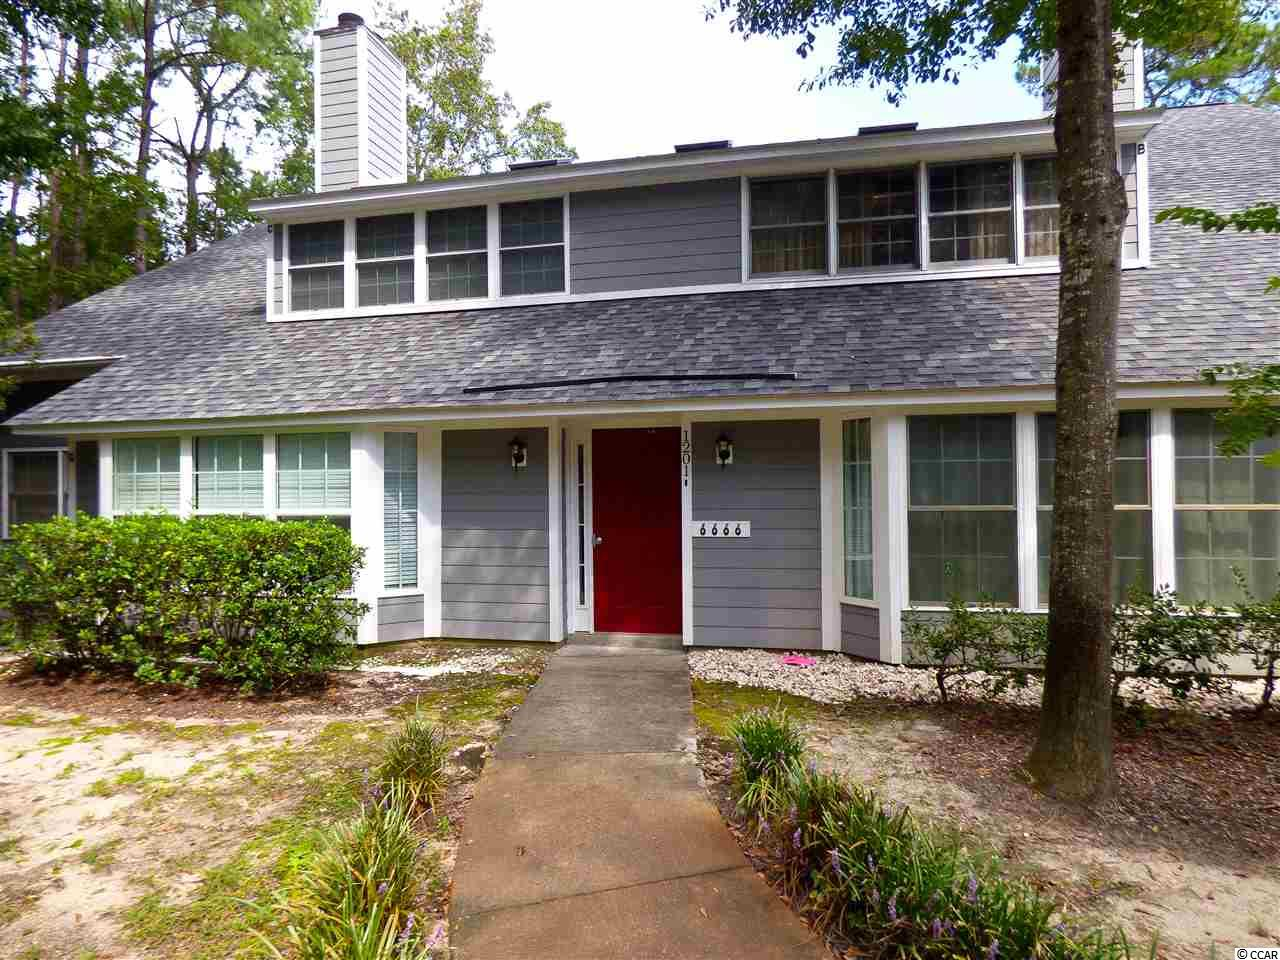 Two Bedroom Sterling Vlgiii Condos For Sale Sterling Village Iii Sterling Vlgiii Sc